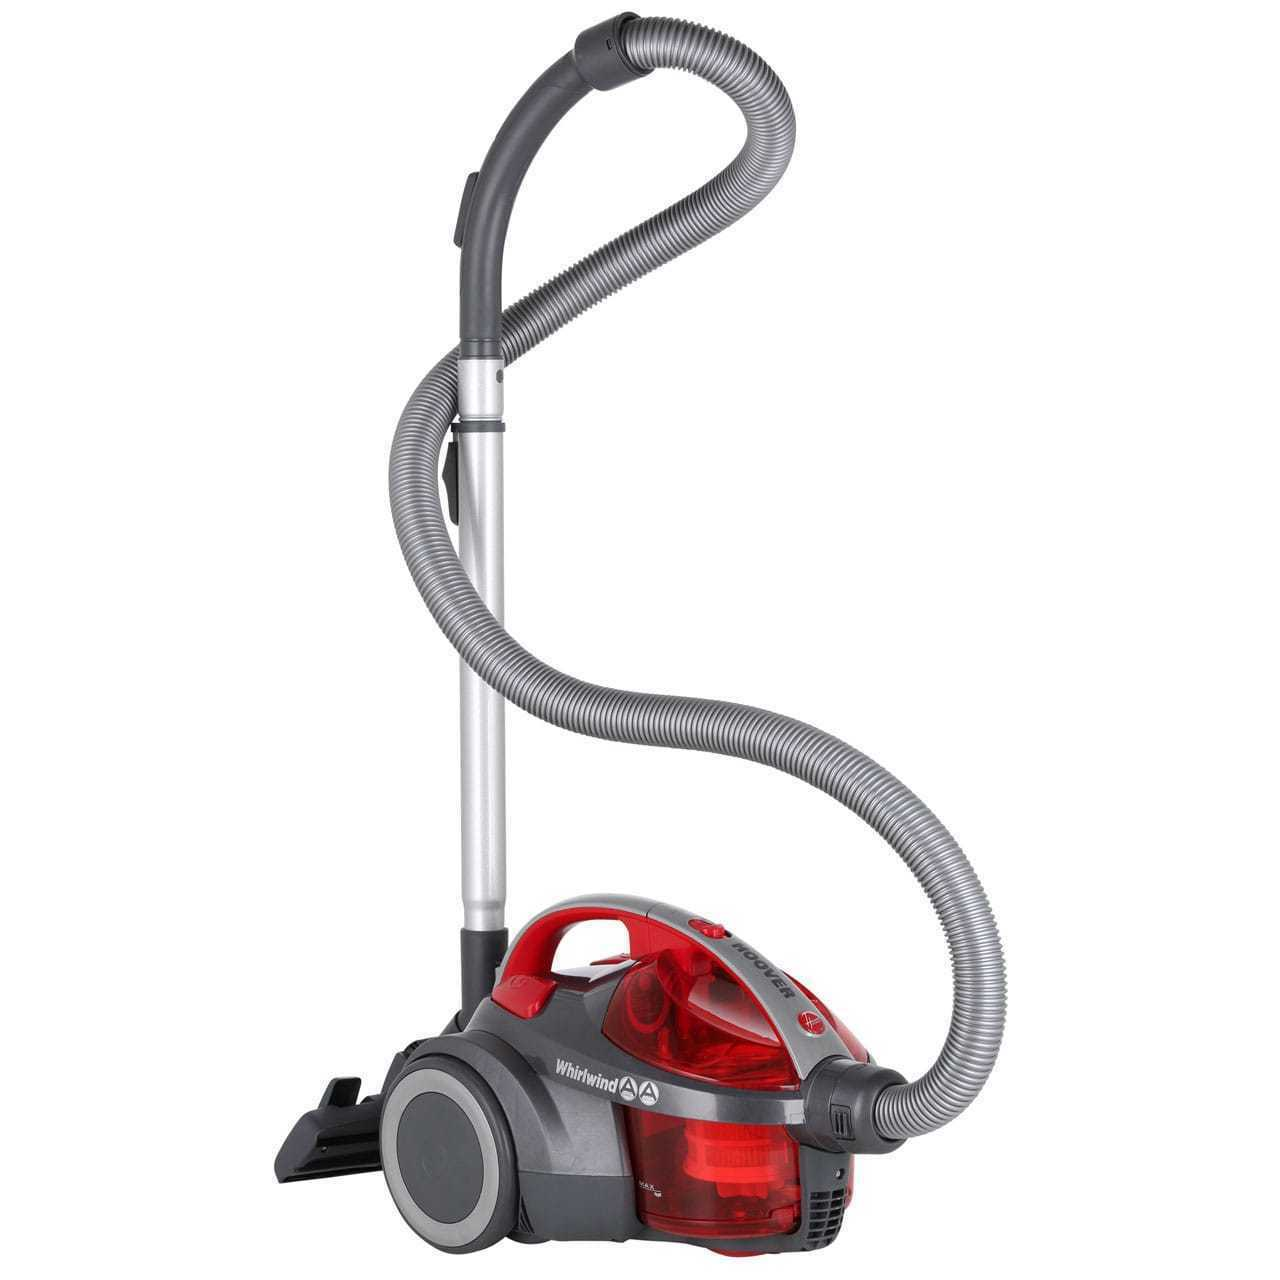 Hoover Whirlwind SE71WR01001 Cylinder Vacuum Cleaner 700 W GreyRed